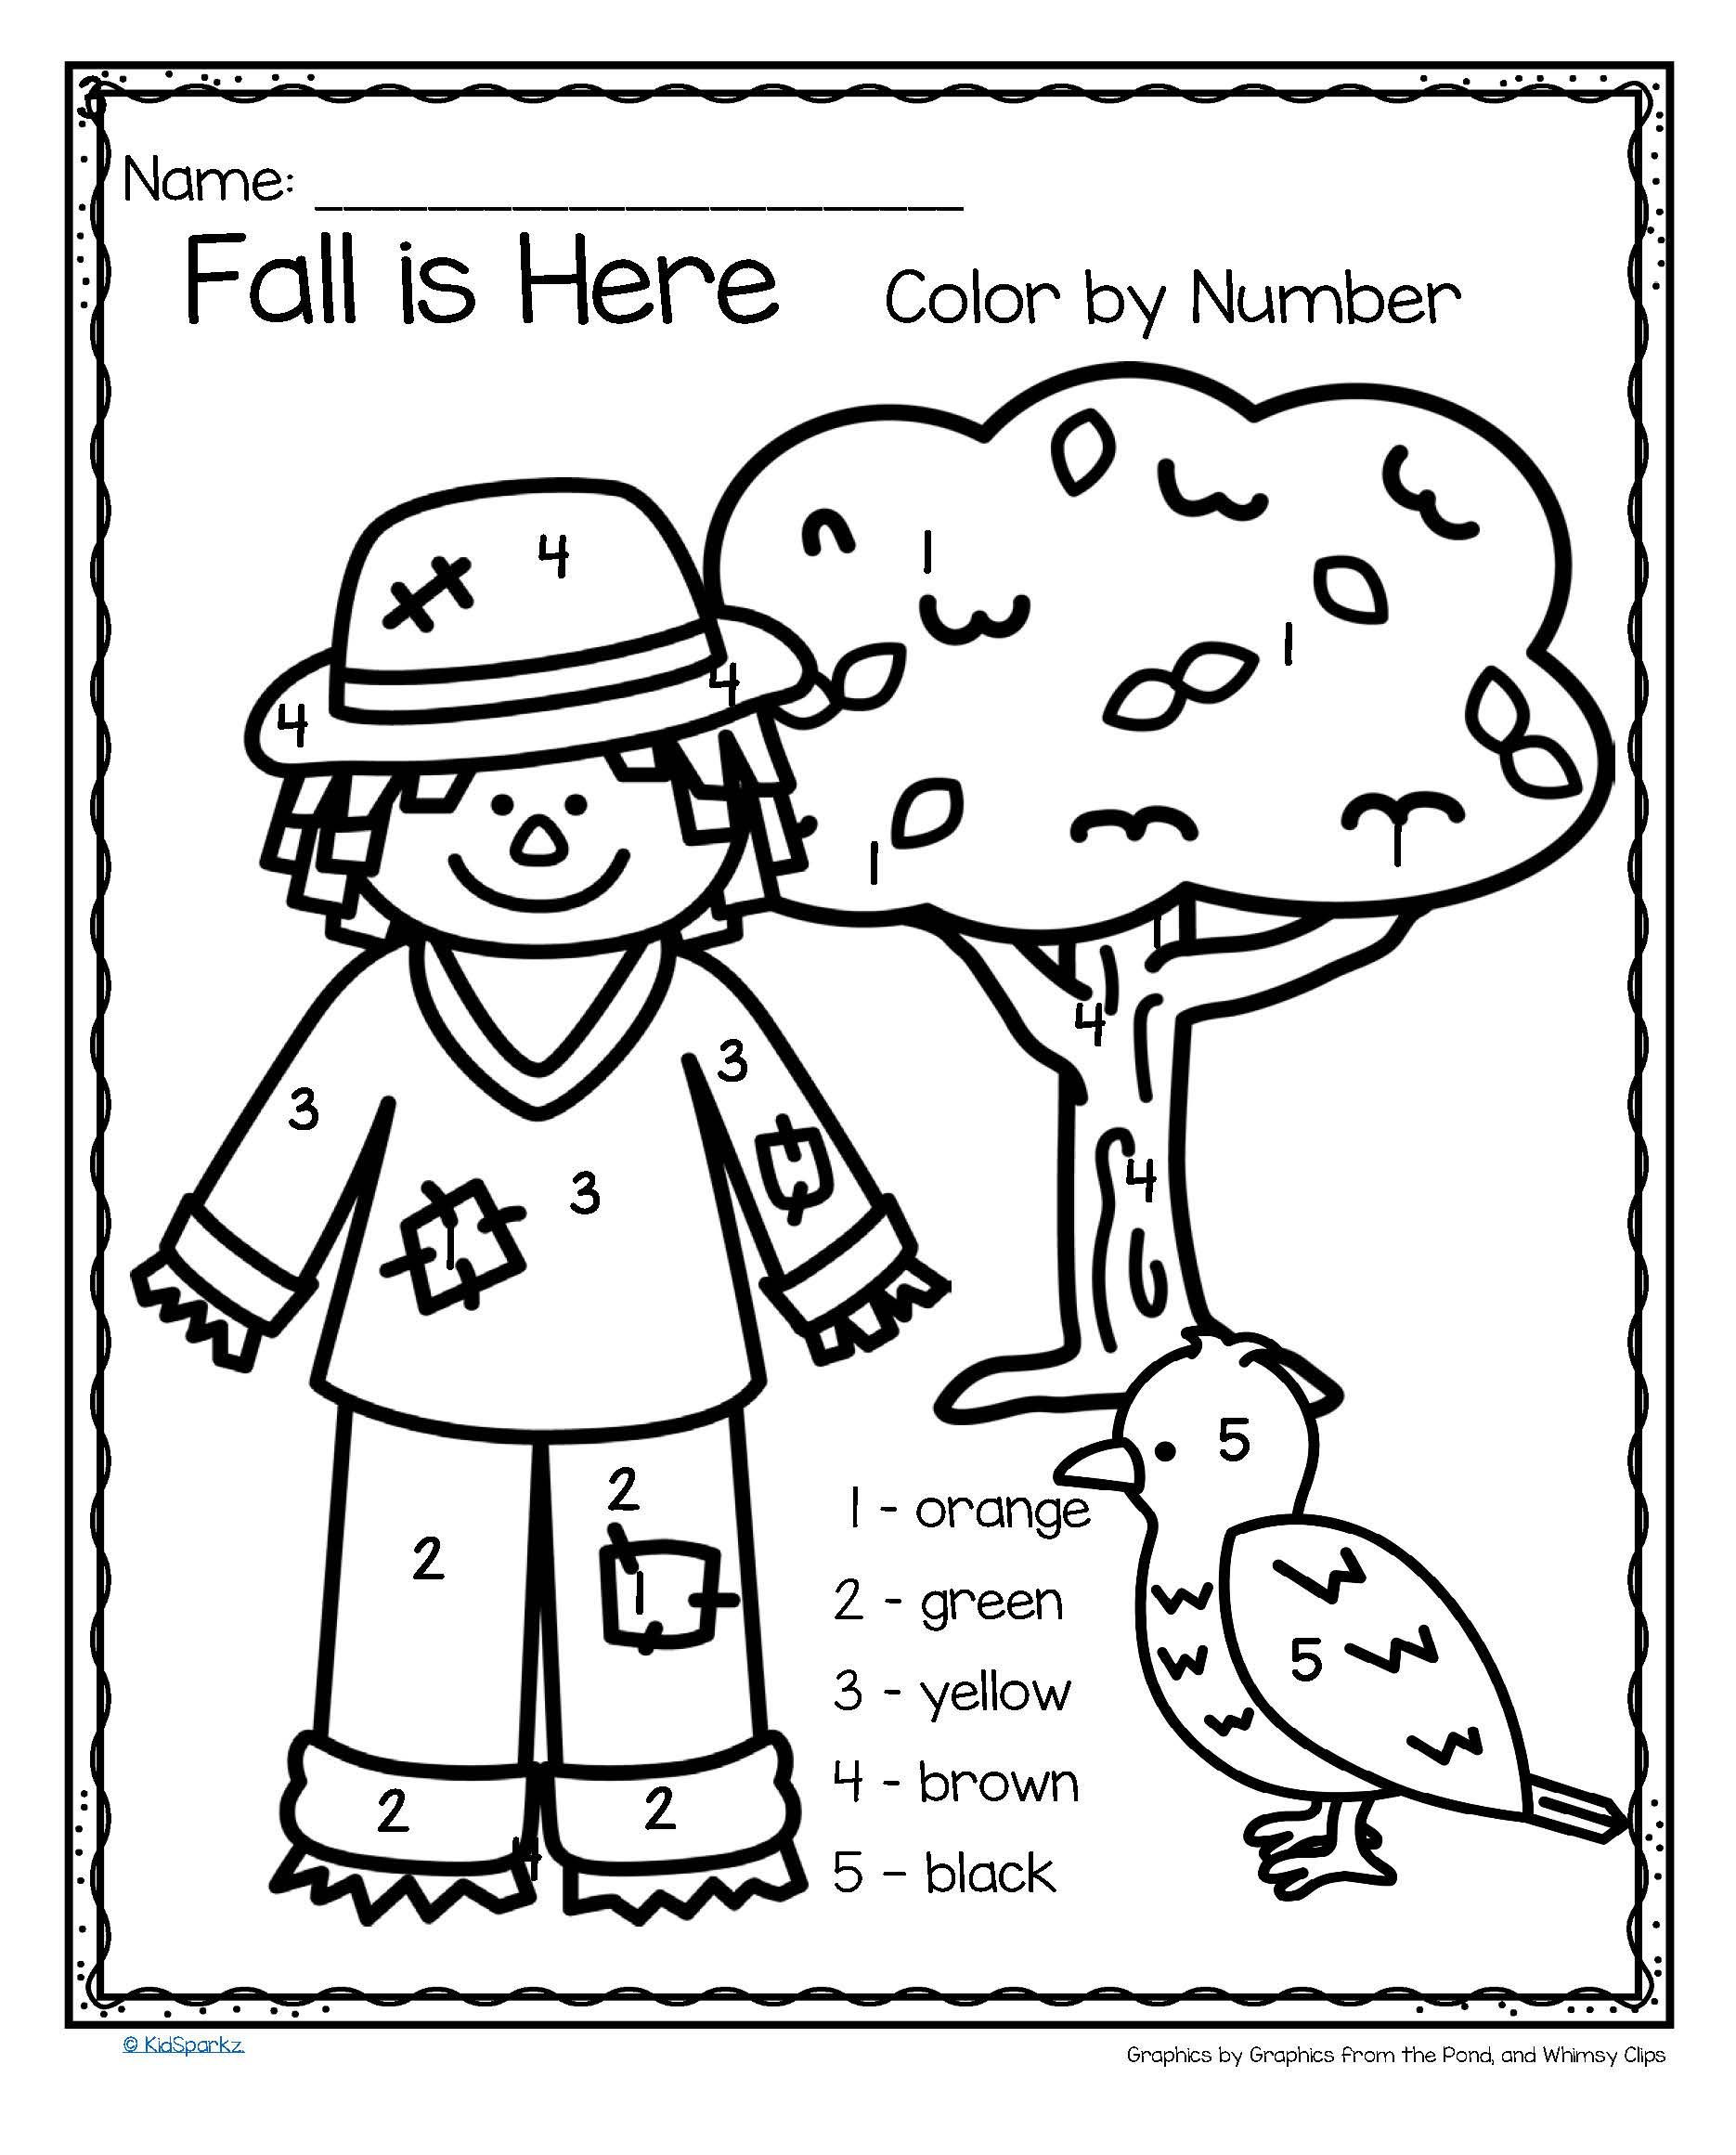 Fall Color by Numbers Worksheets Fall is Here Color by Number Printables 3 Pages